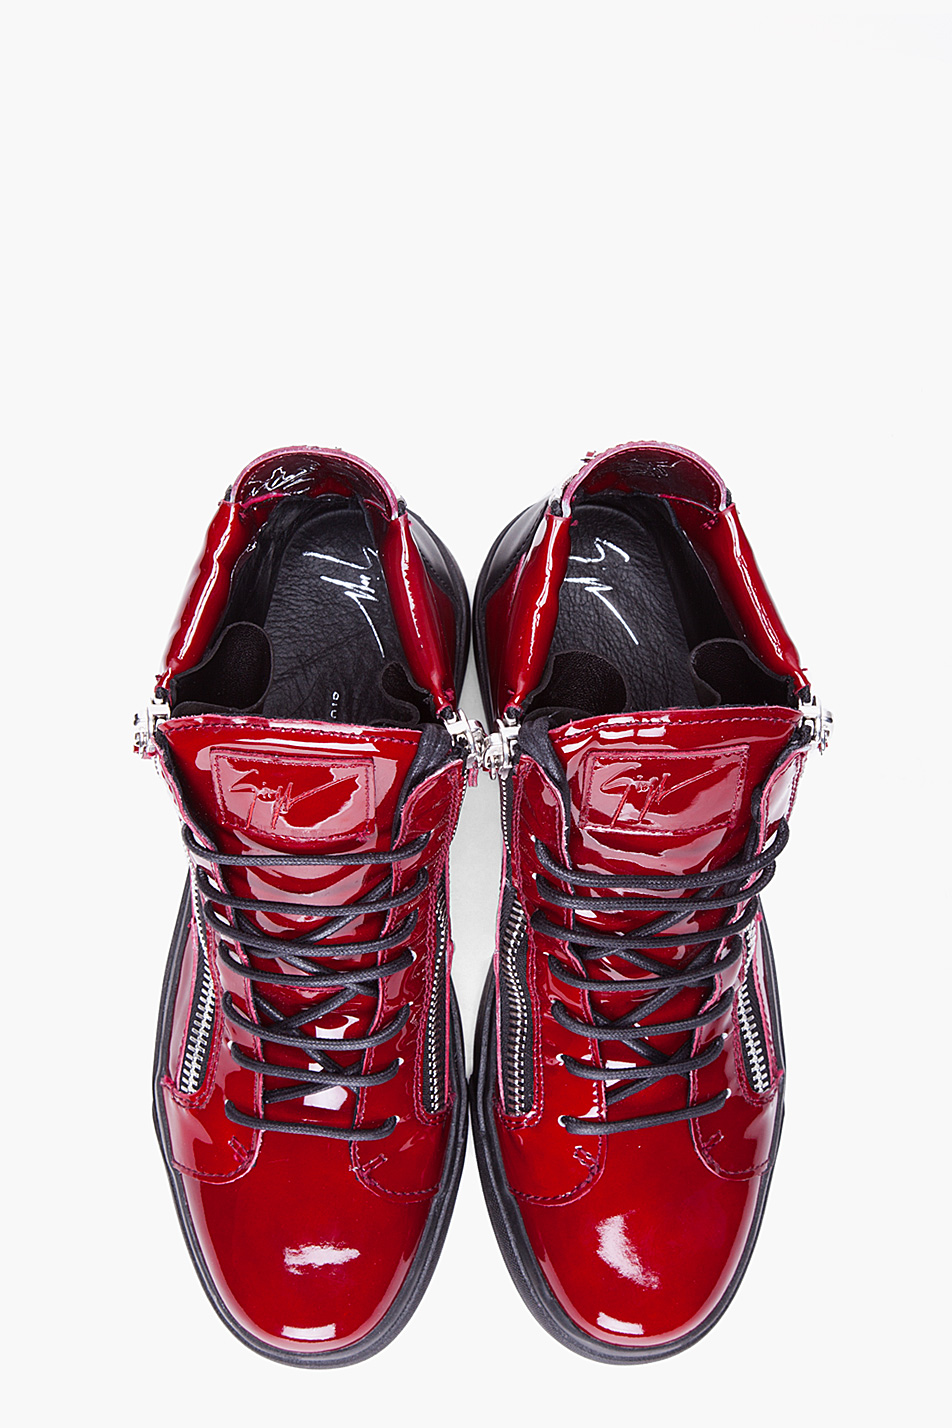 Giuseppe Zanotti Red Patent Leather Sneakers For Men Lyst